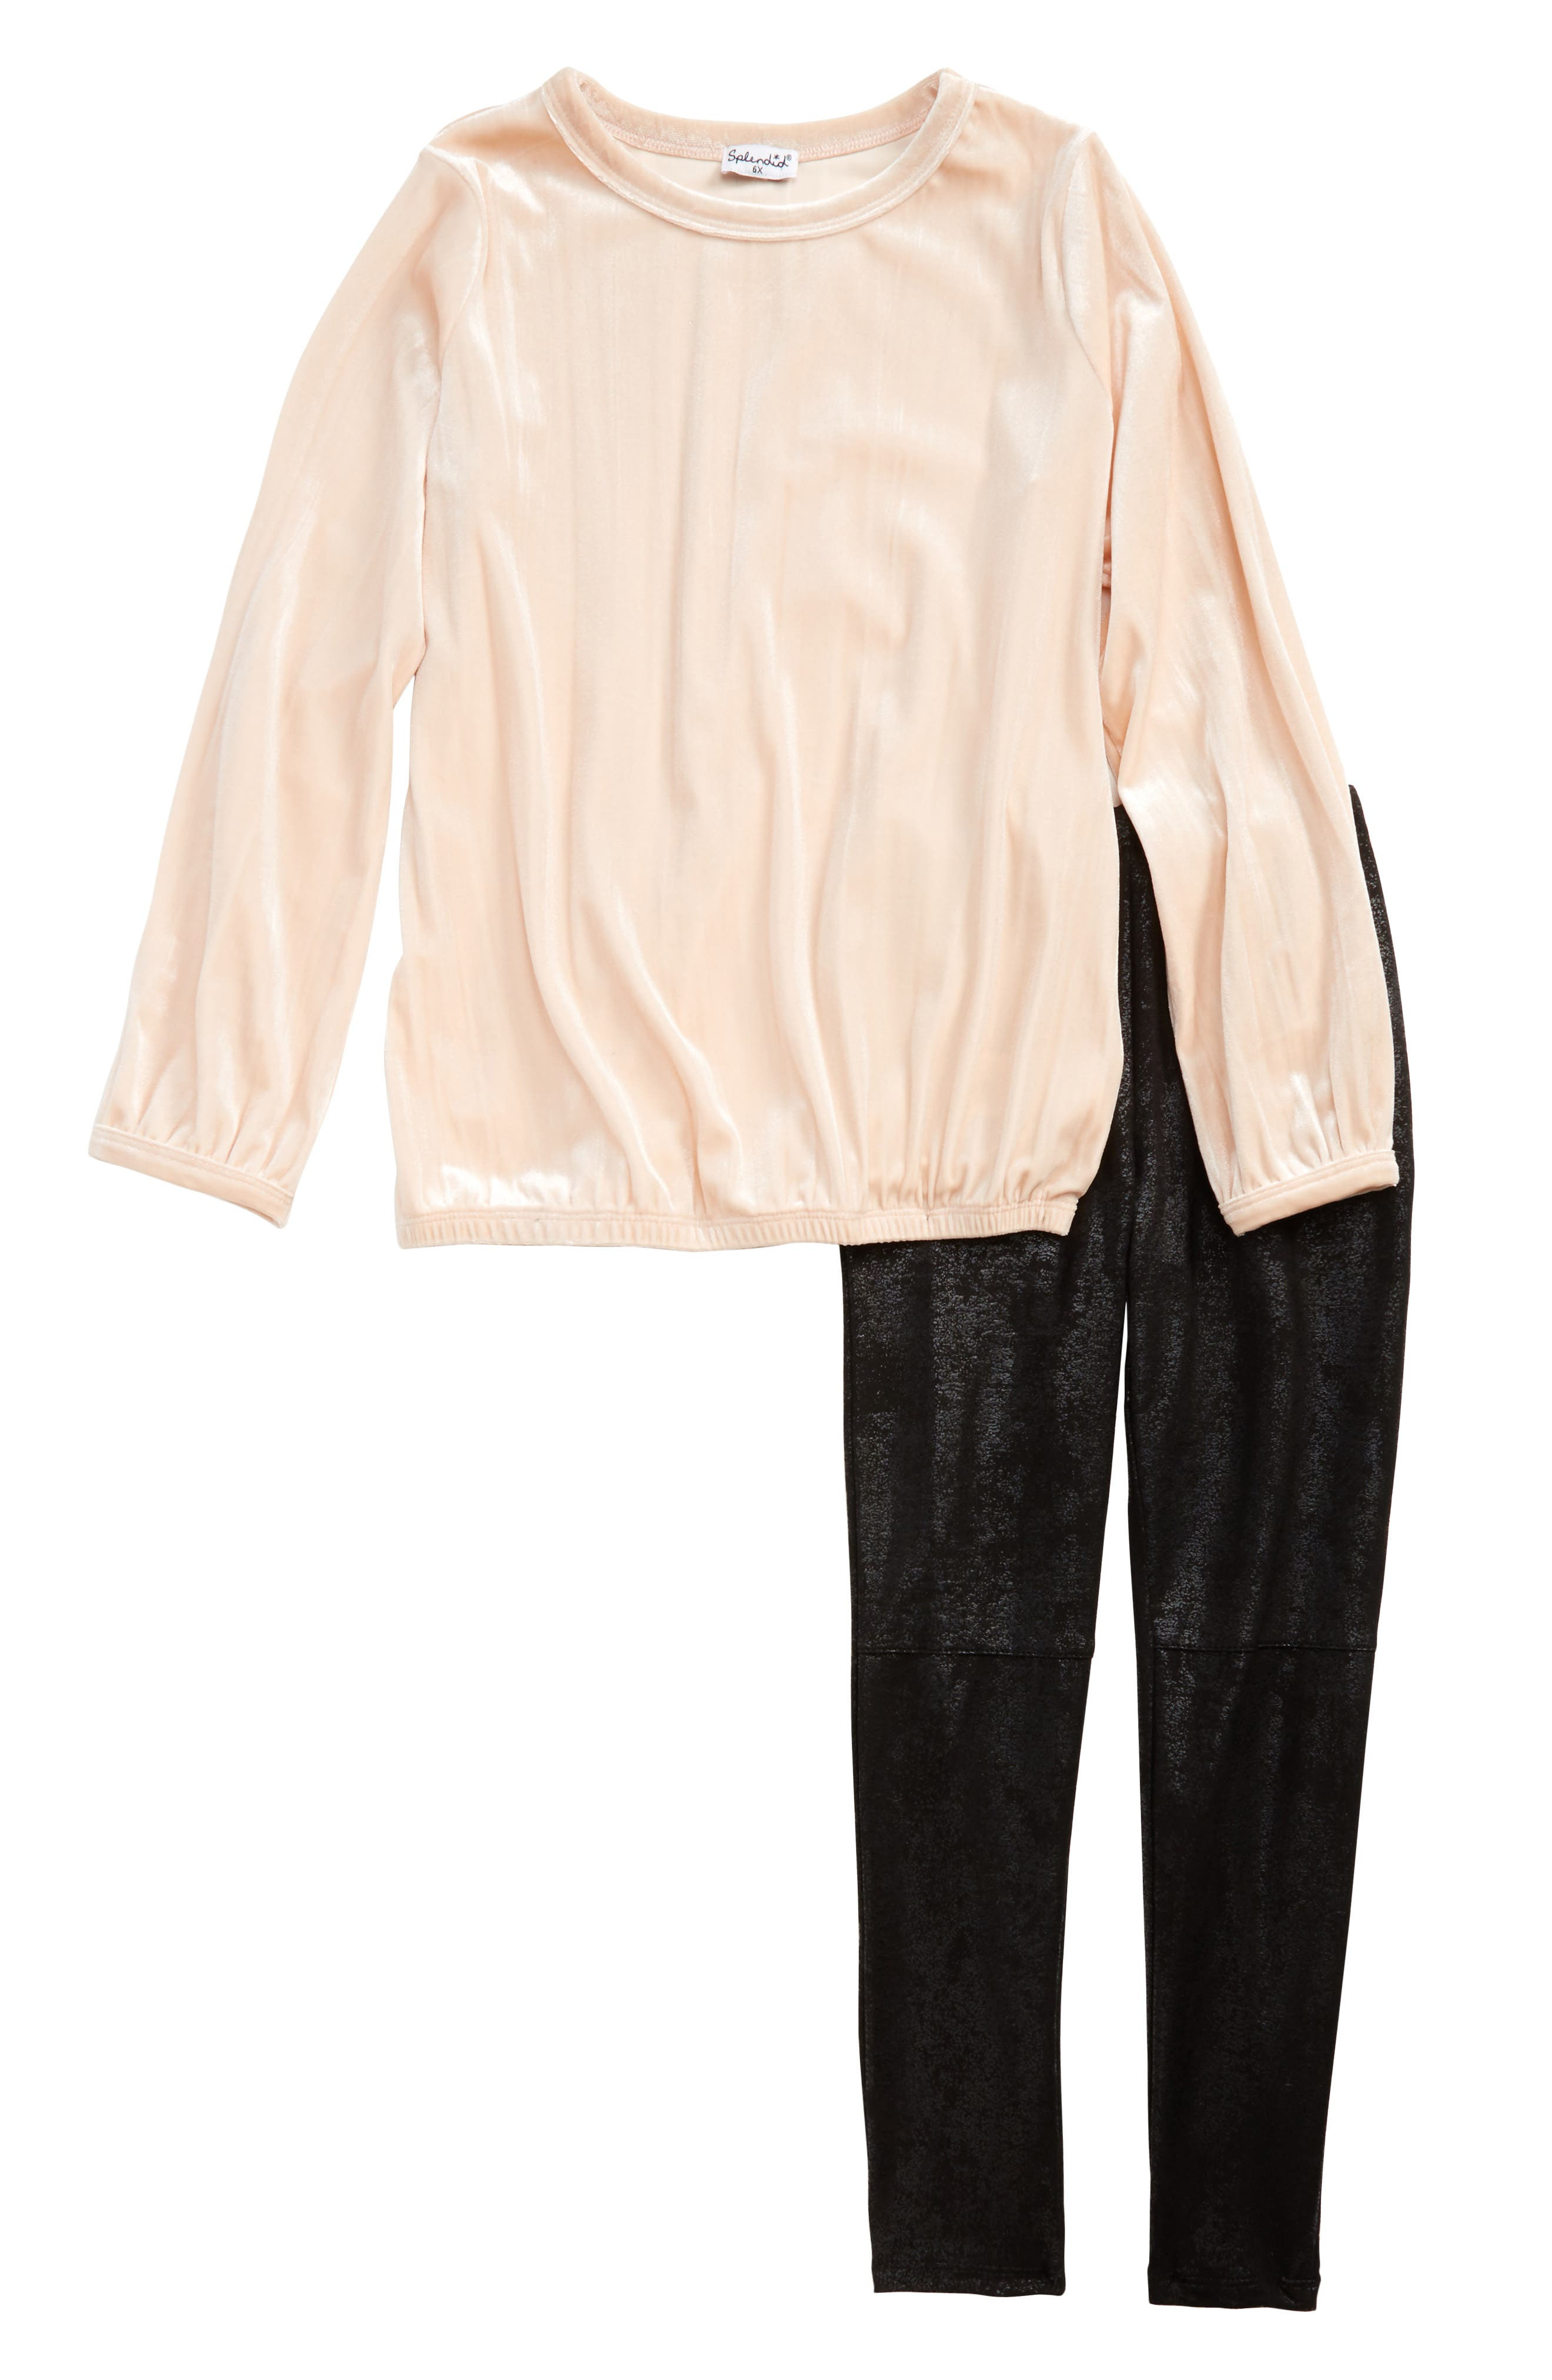 Velour Tunic & Faux Leather Leggings Set,                             Main thumbnail 1, color,                             Light Pink